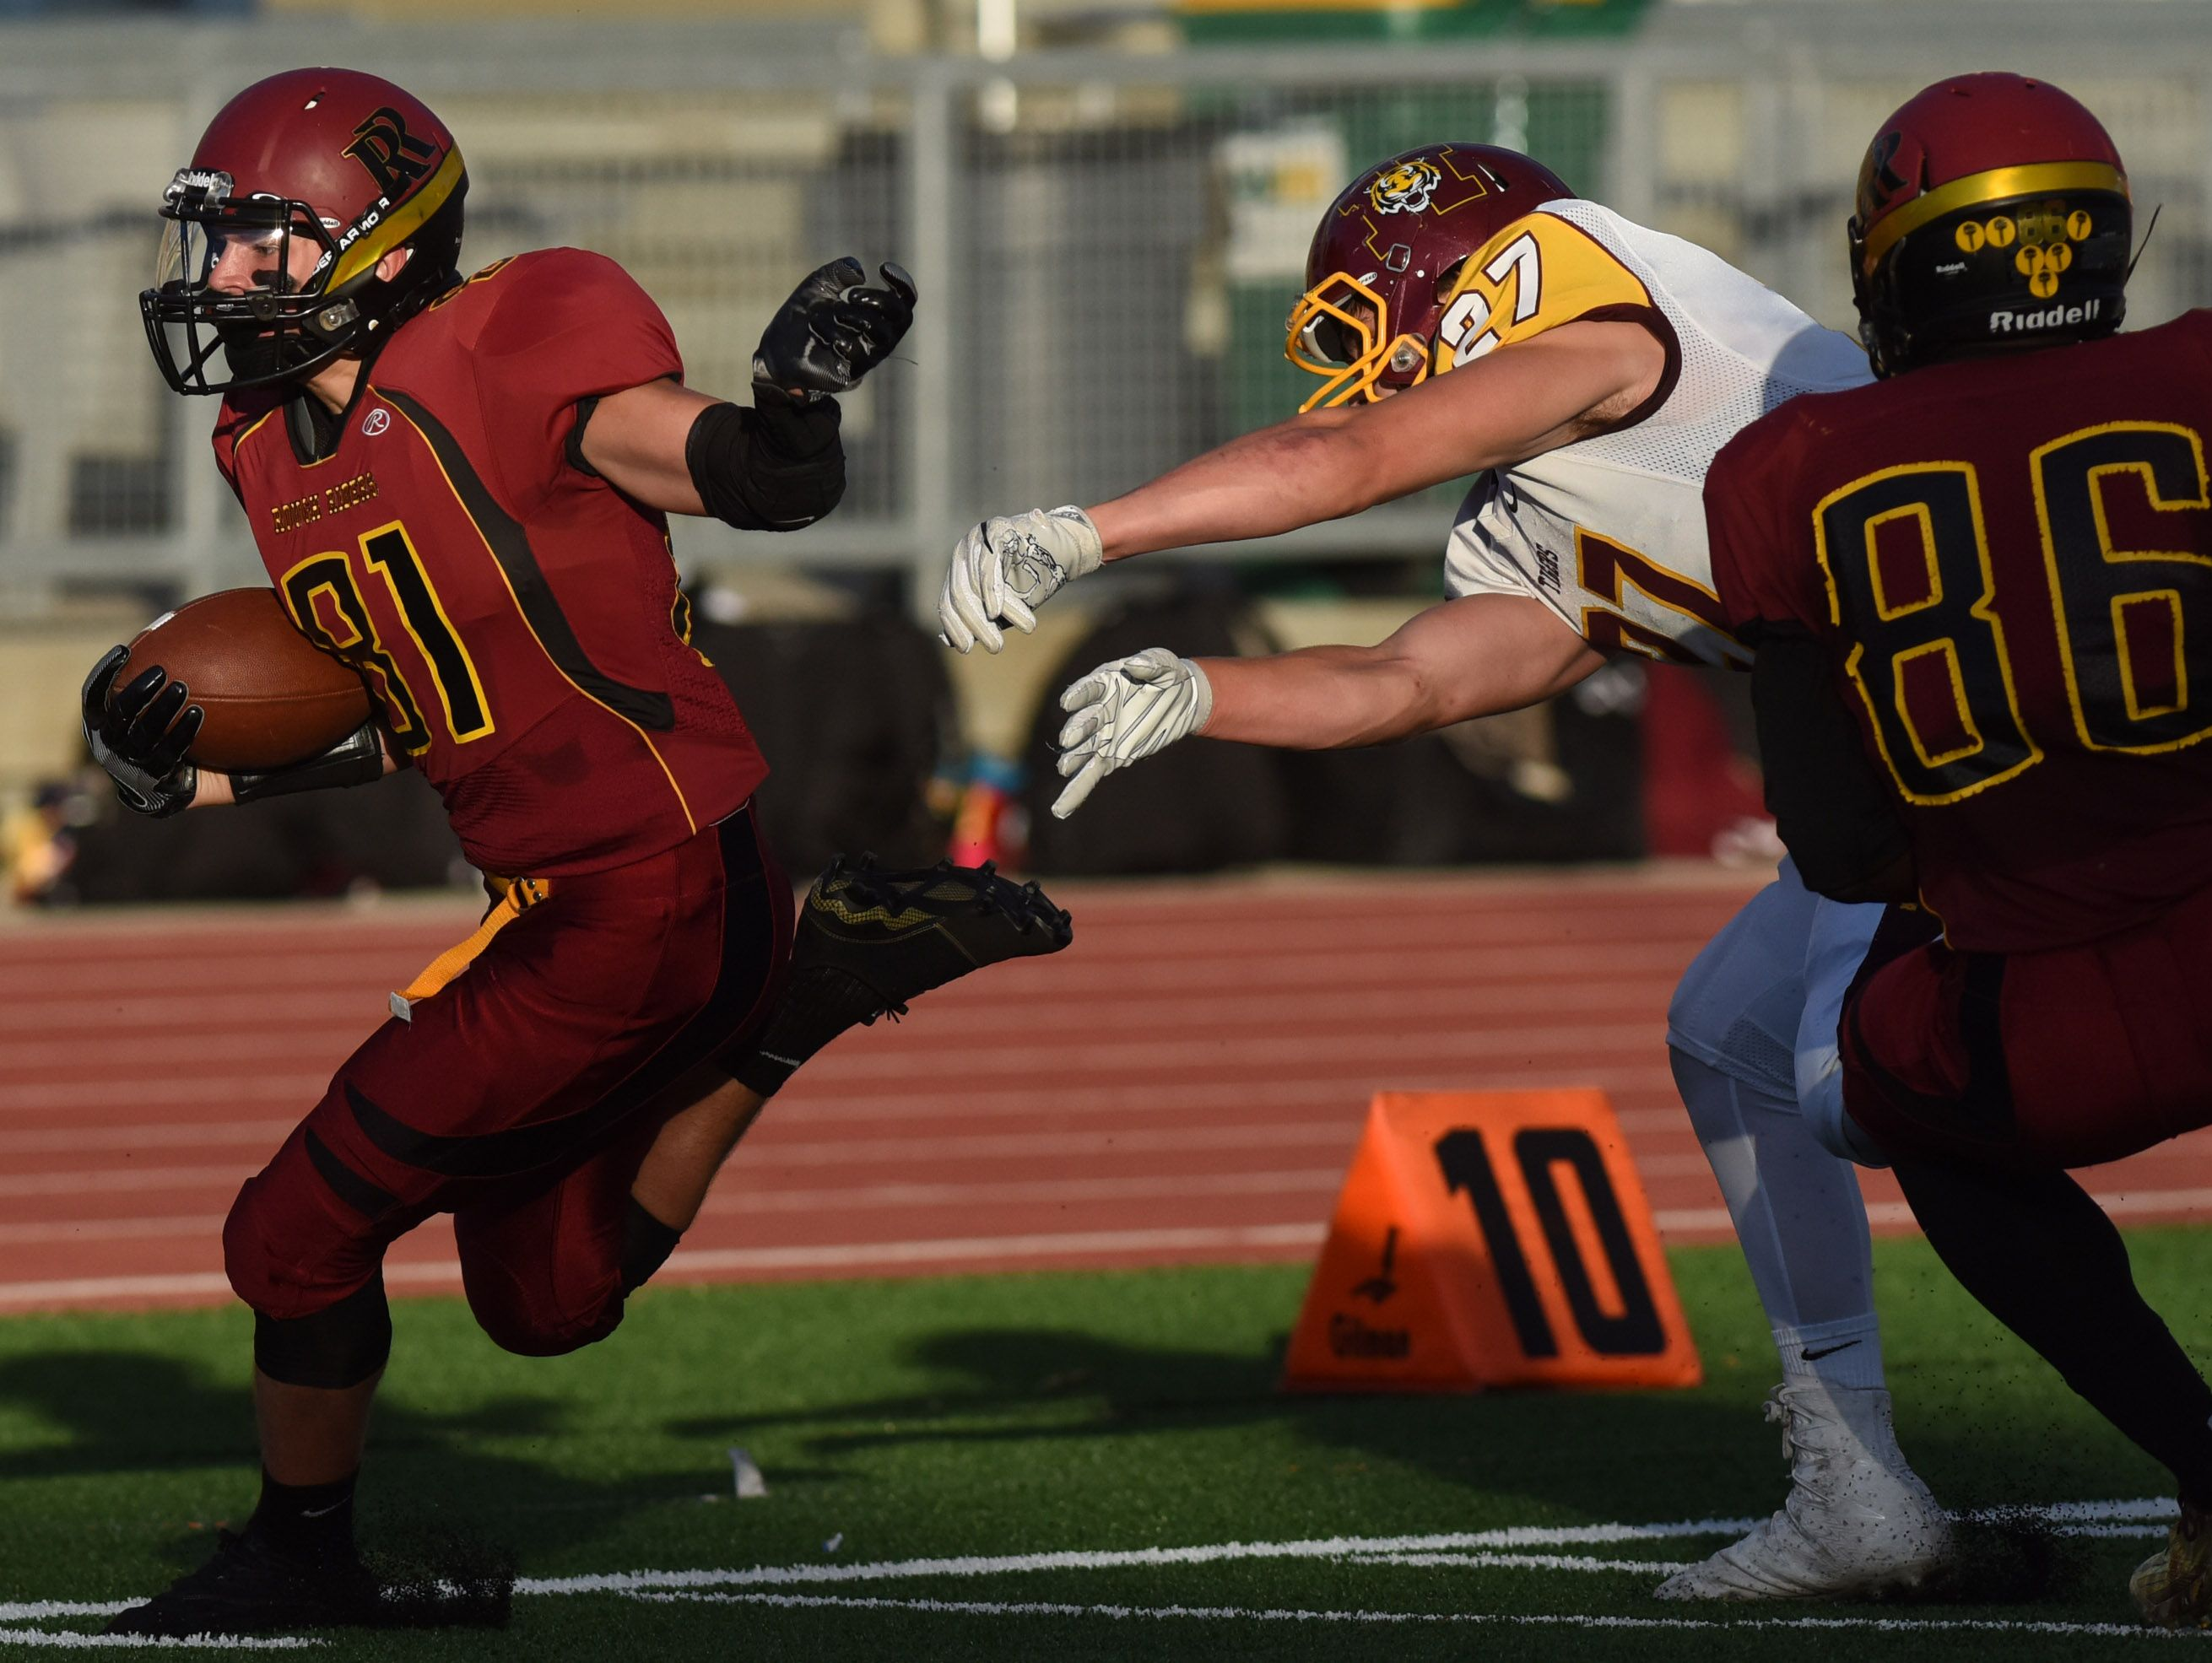 Roosevelt's Austin Johnson runs toward the end zone while Harrisburg's Logan Warzecha tries to stop him during their game on Friday at Howard Wood Field.